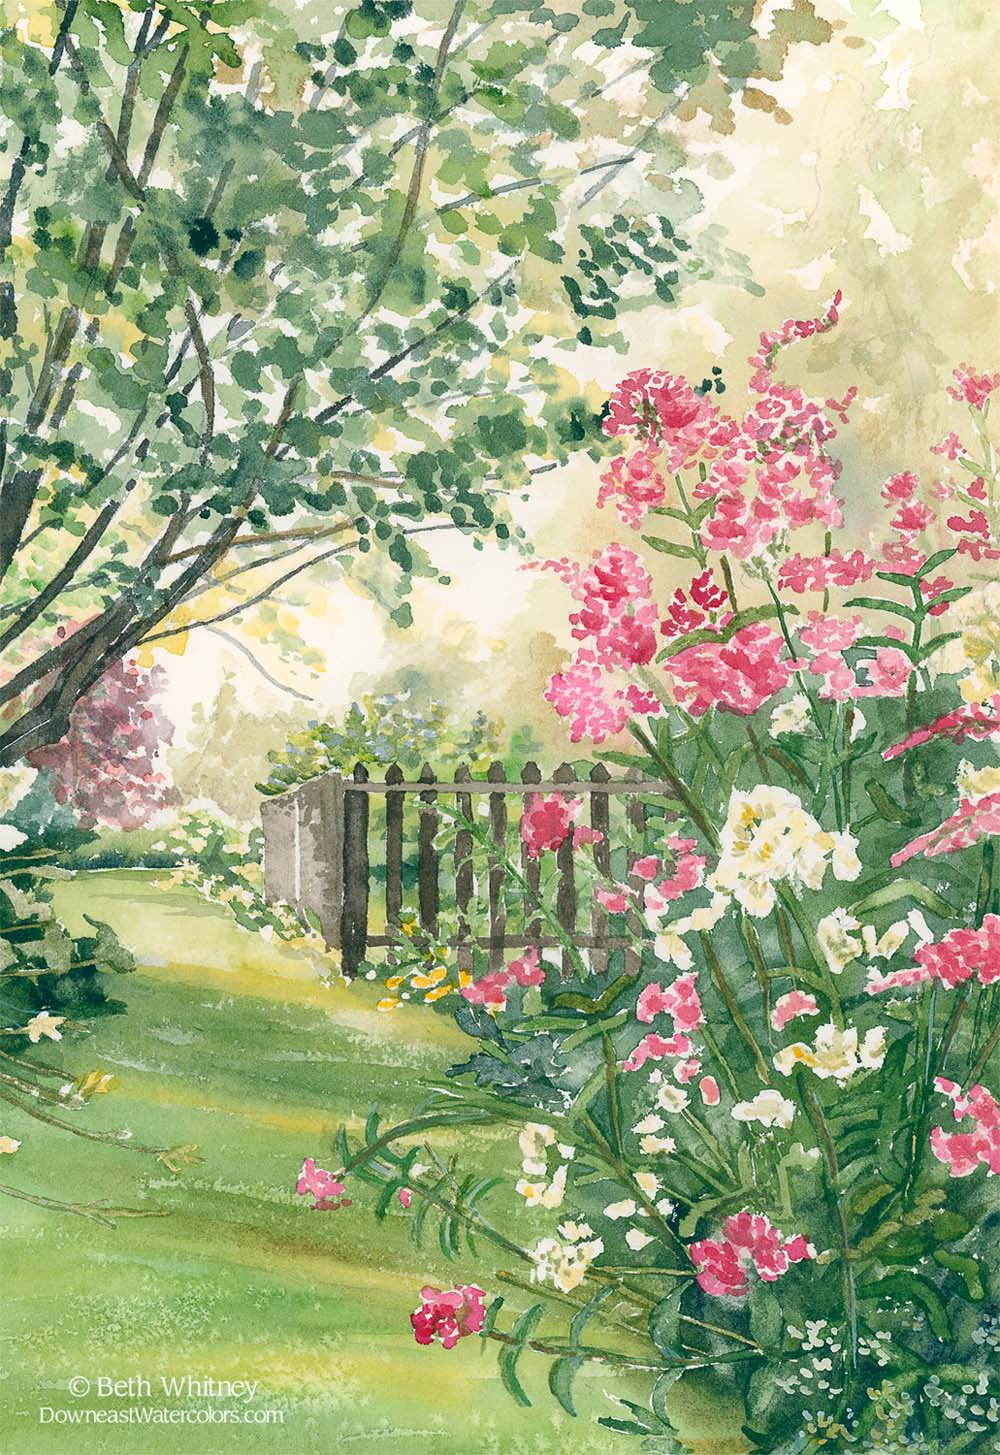 Misty Morning Sunshine, Painting of a Maine summer garden by artist Beth Whitney | DowneastWatercolors.com